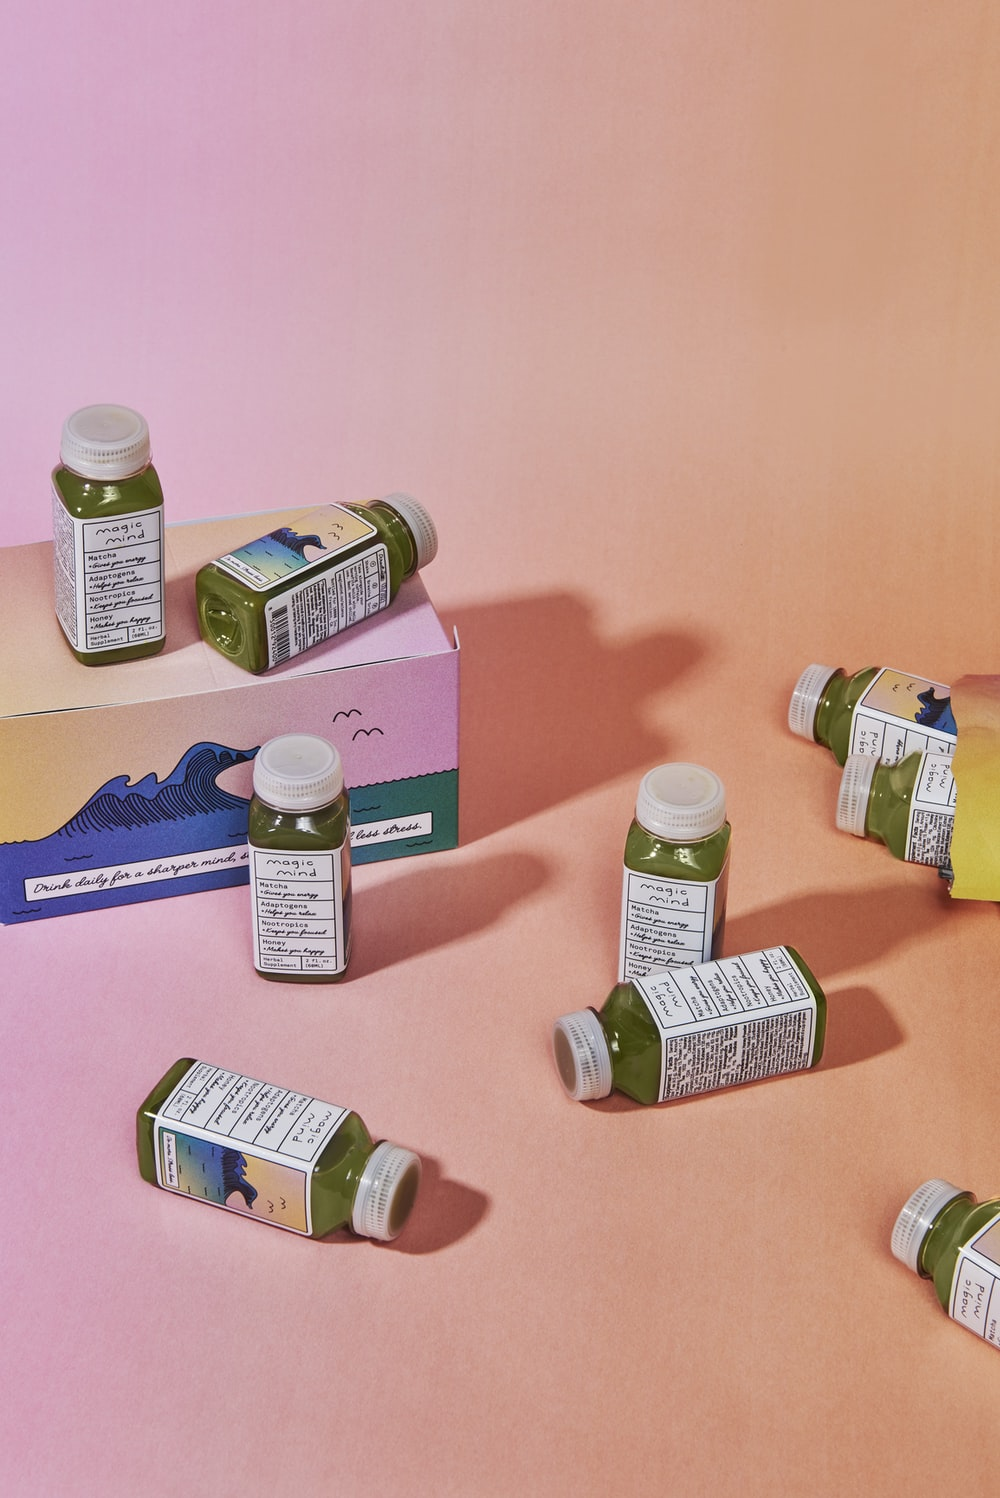 A Step-by-Step Guide On Integrating Innovation With Packaging